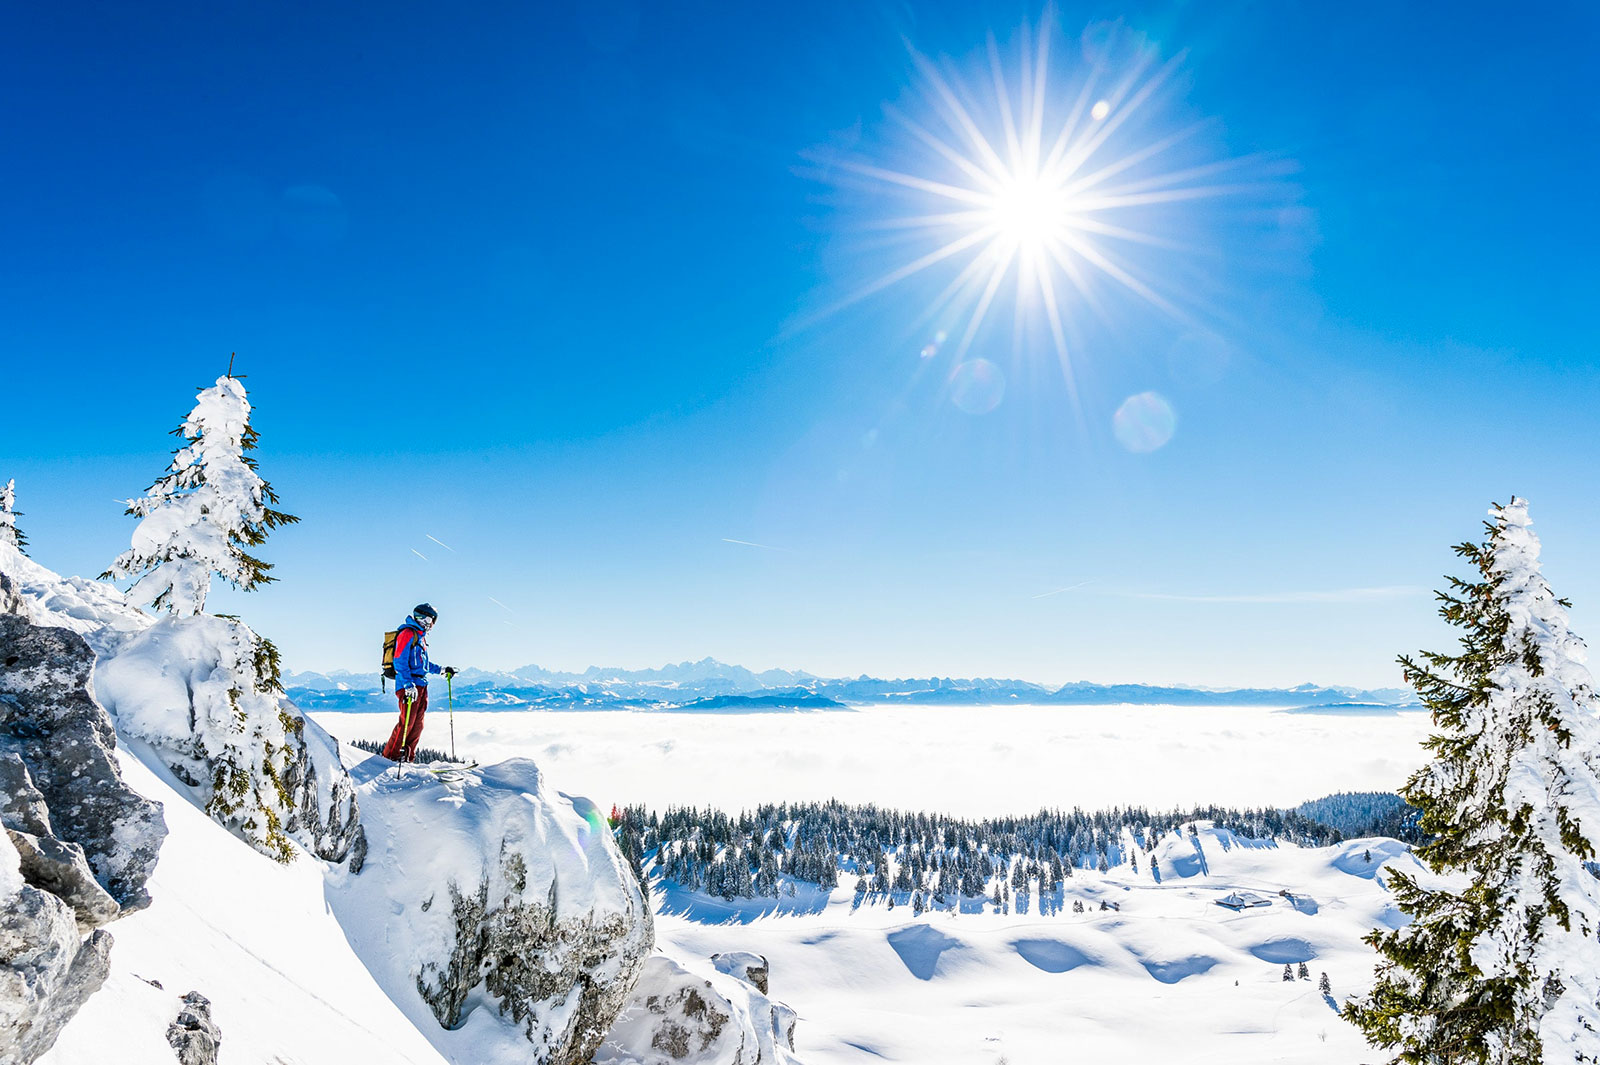 A skier on top of a mountain